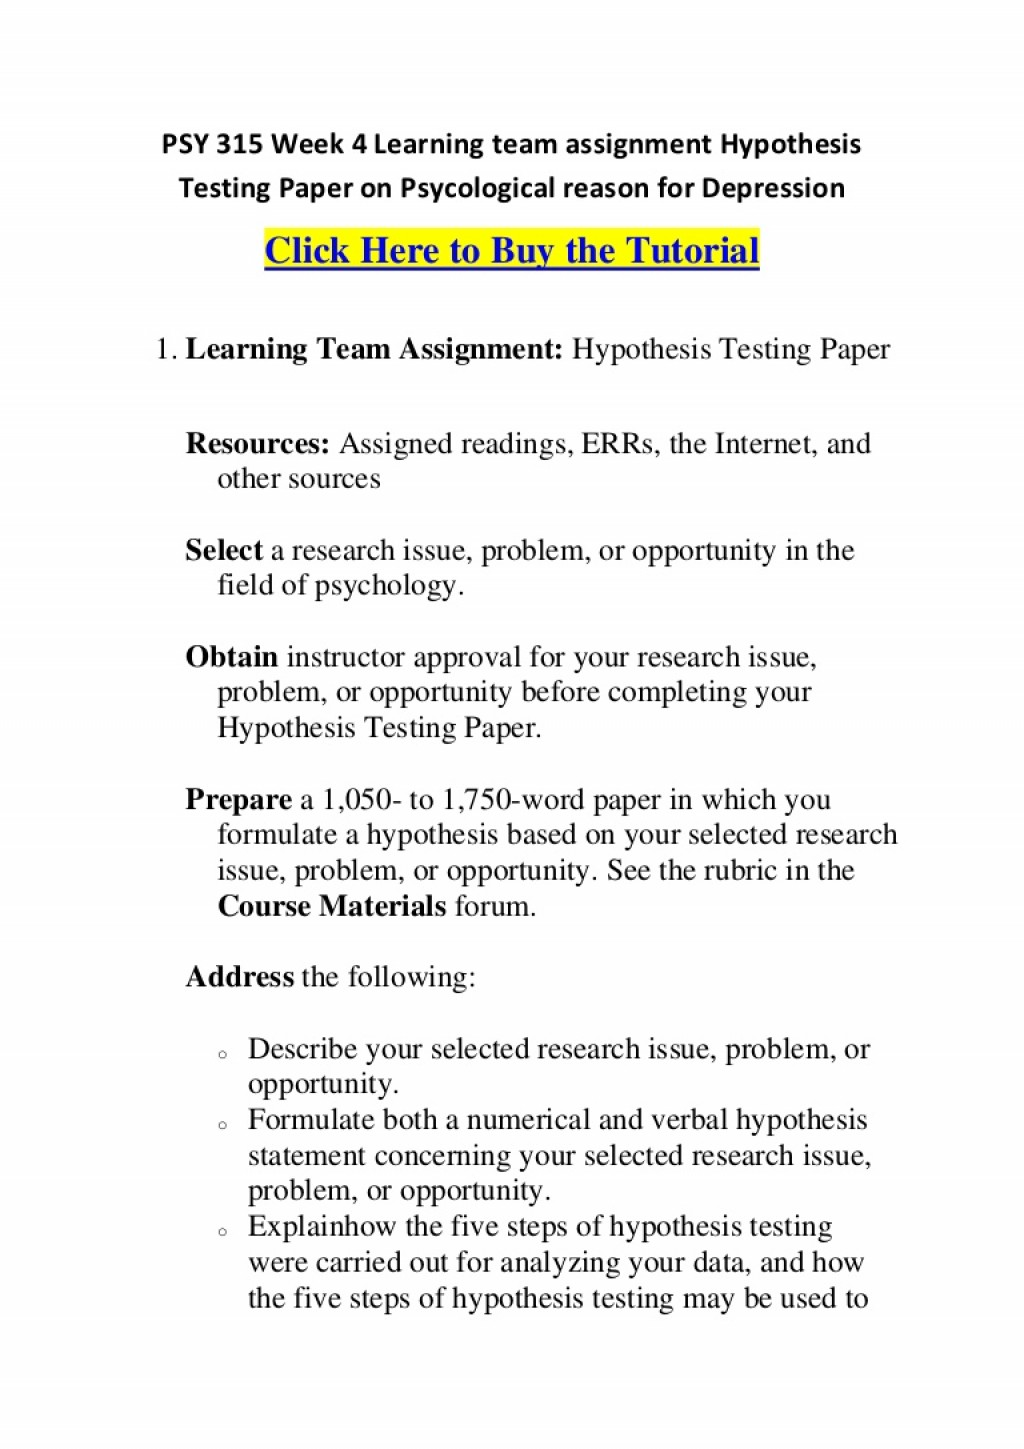 009 Psy315week4learningteamassignmenthypothesistestingpaperonpsycologicalreasonfordepression Phpapp01 Thumbnail Hypothesis Testing In Research Awesome Paper Pdf Large